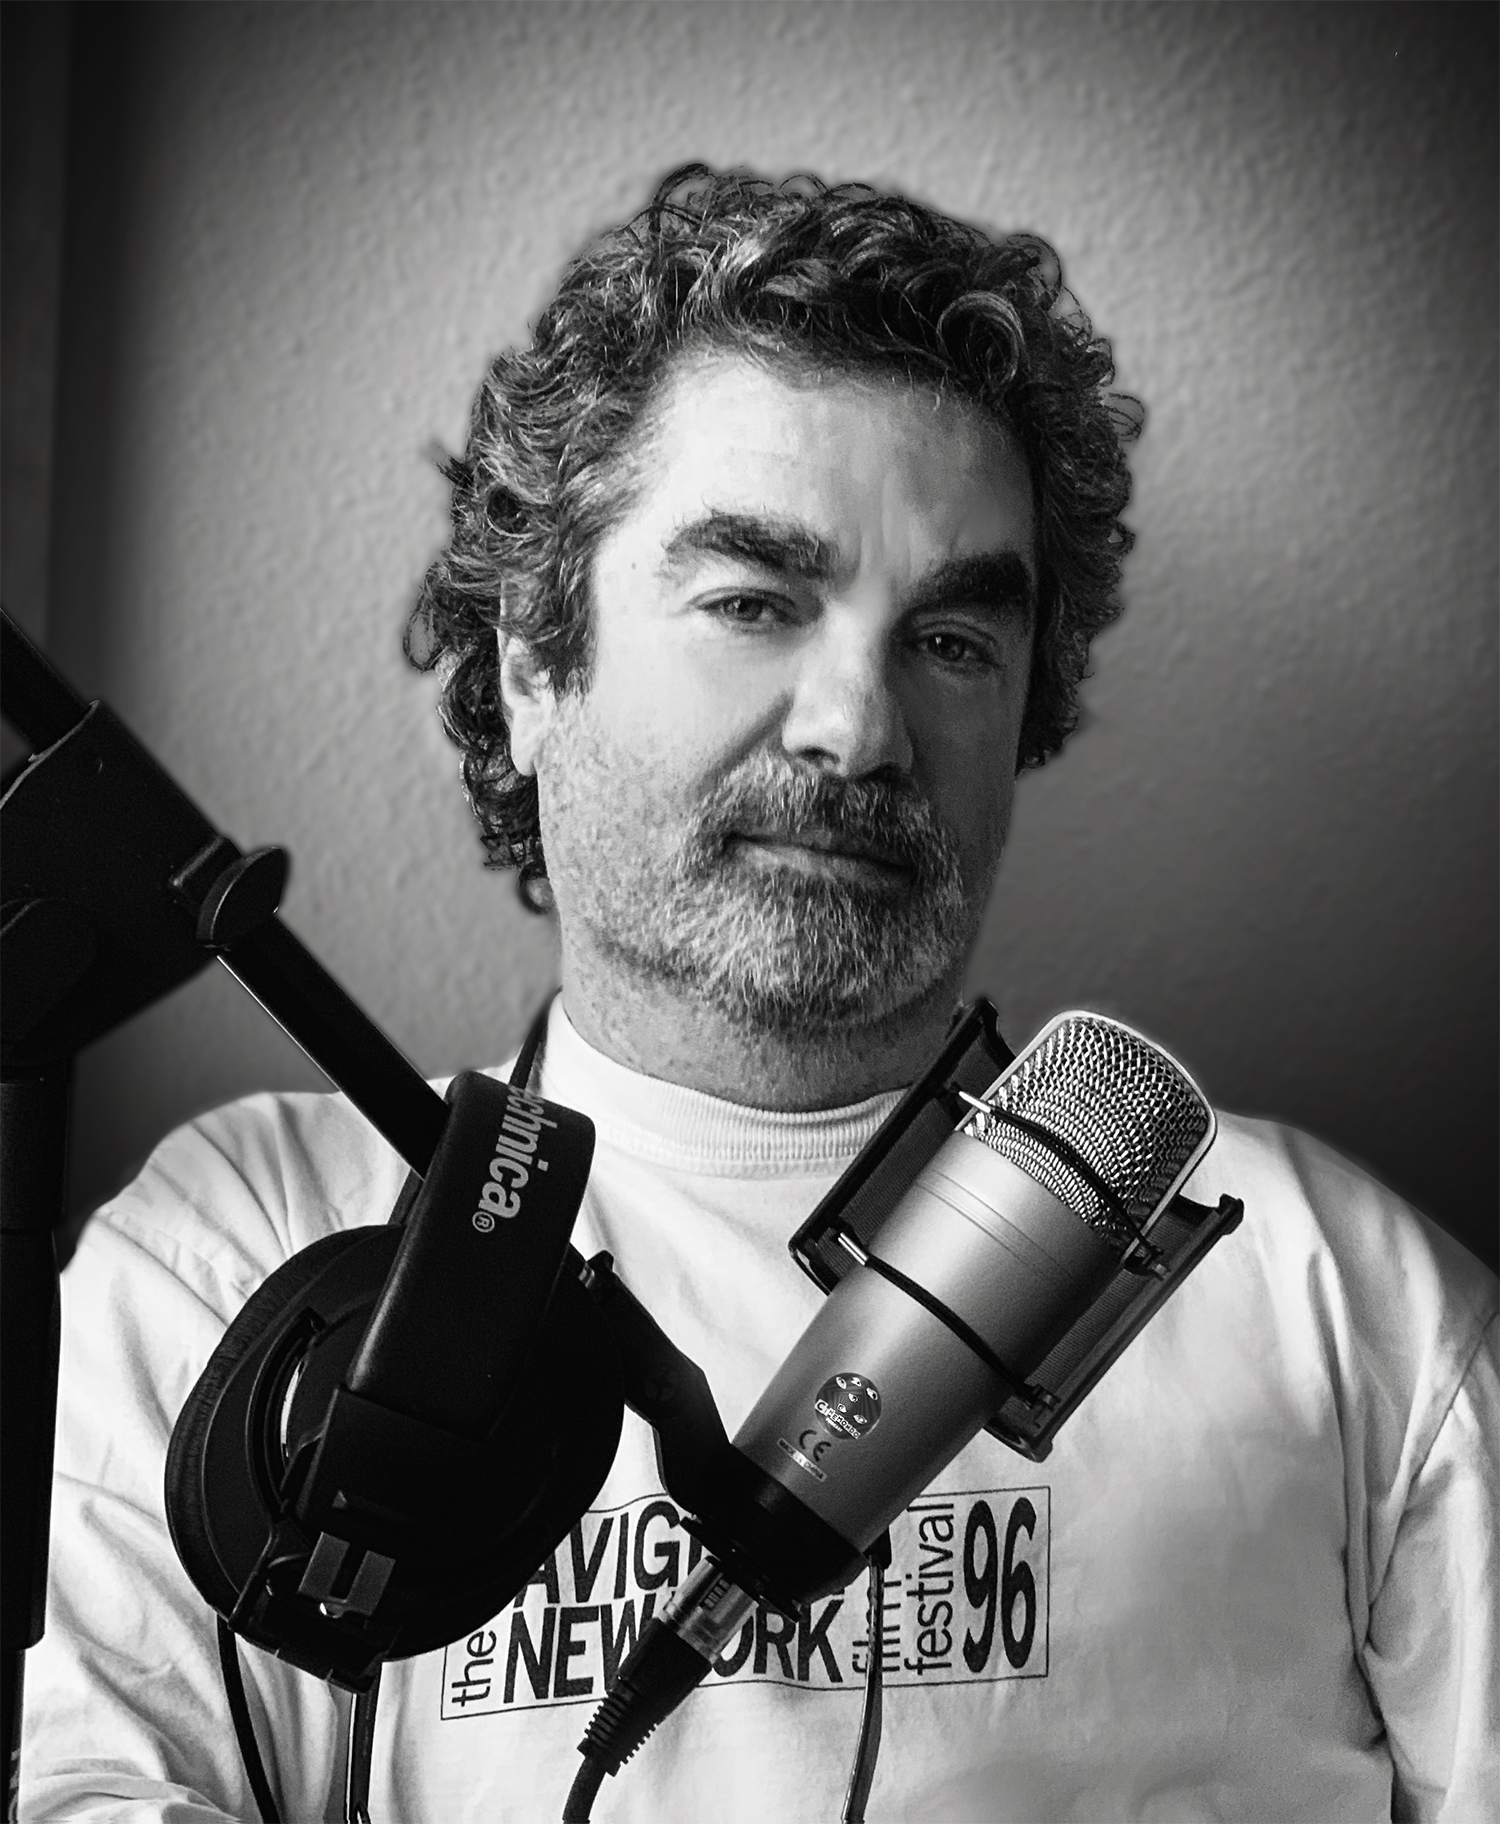 Joe Berlinger: Discussing Filmed Reality - Netflix's Extremely Wicked, Shockingly Evil and Vile, Conversations With a Killer: The Bundy Tapes and Paradise Lost Trilogy